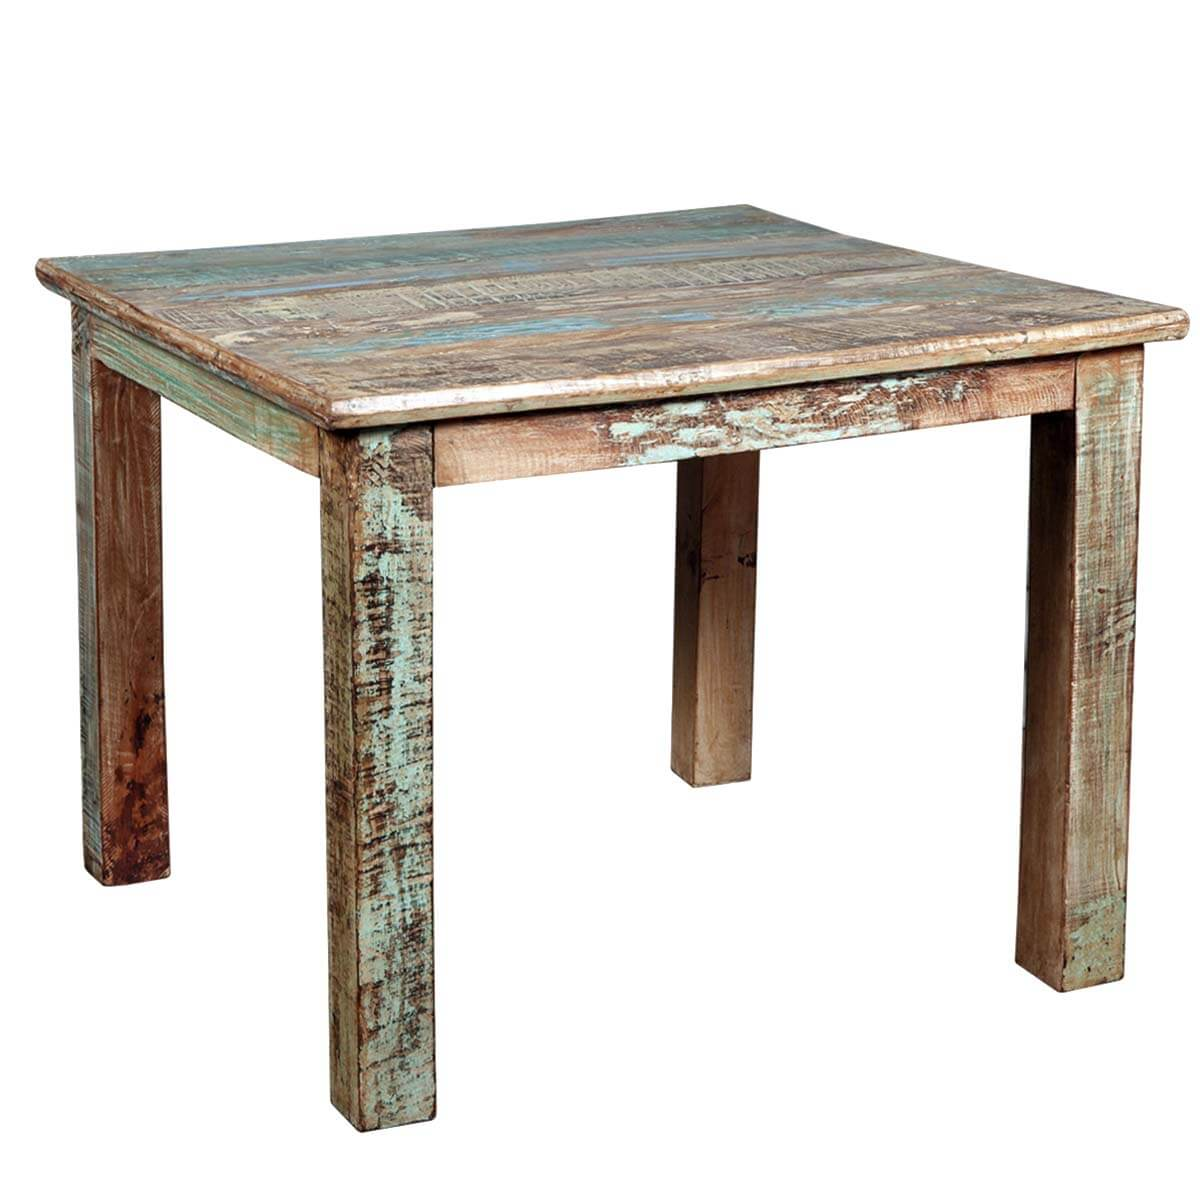 Distressed wood dining room table clarity photographs